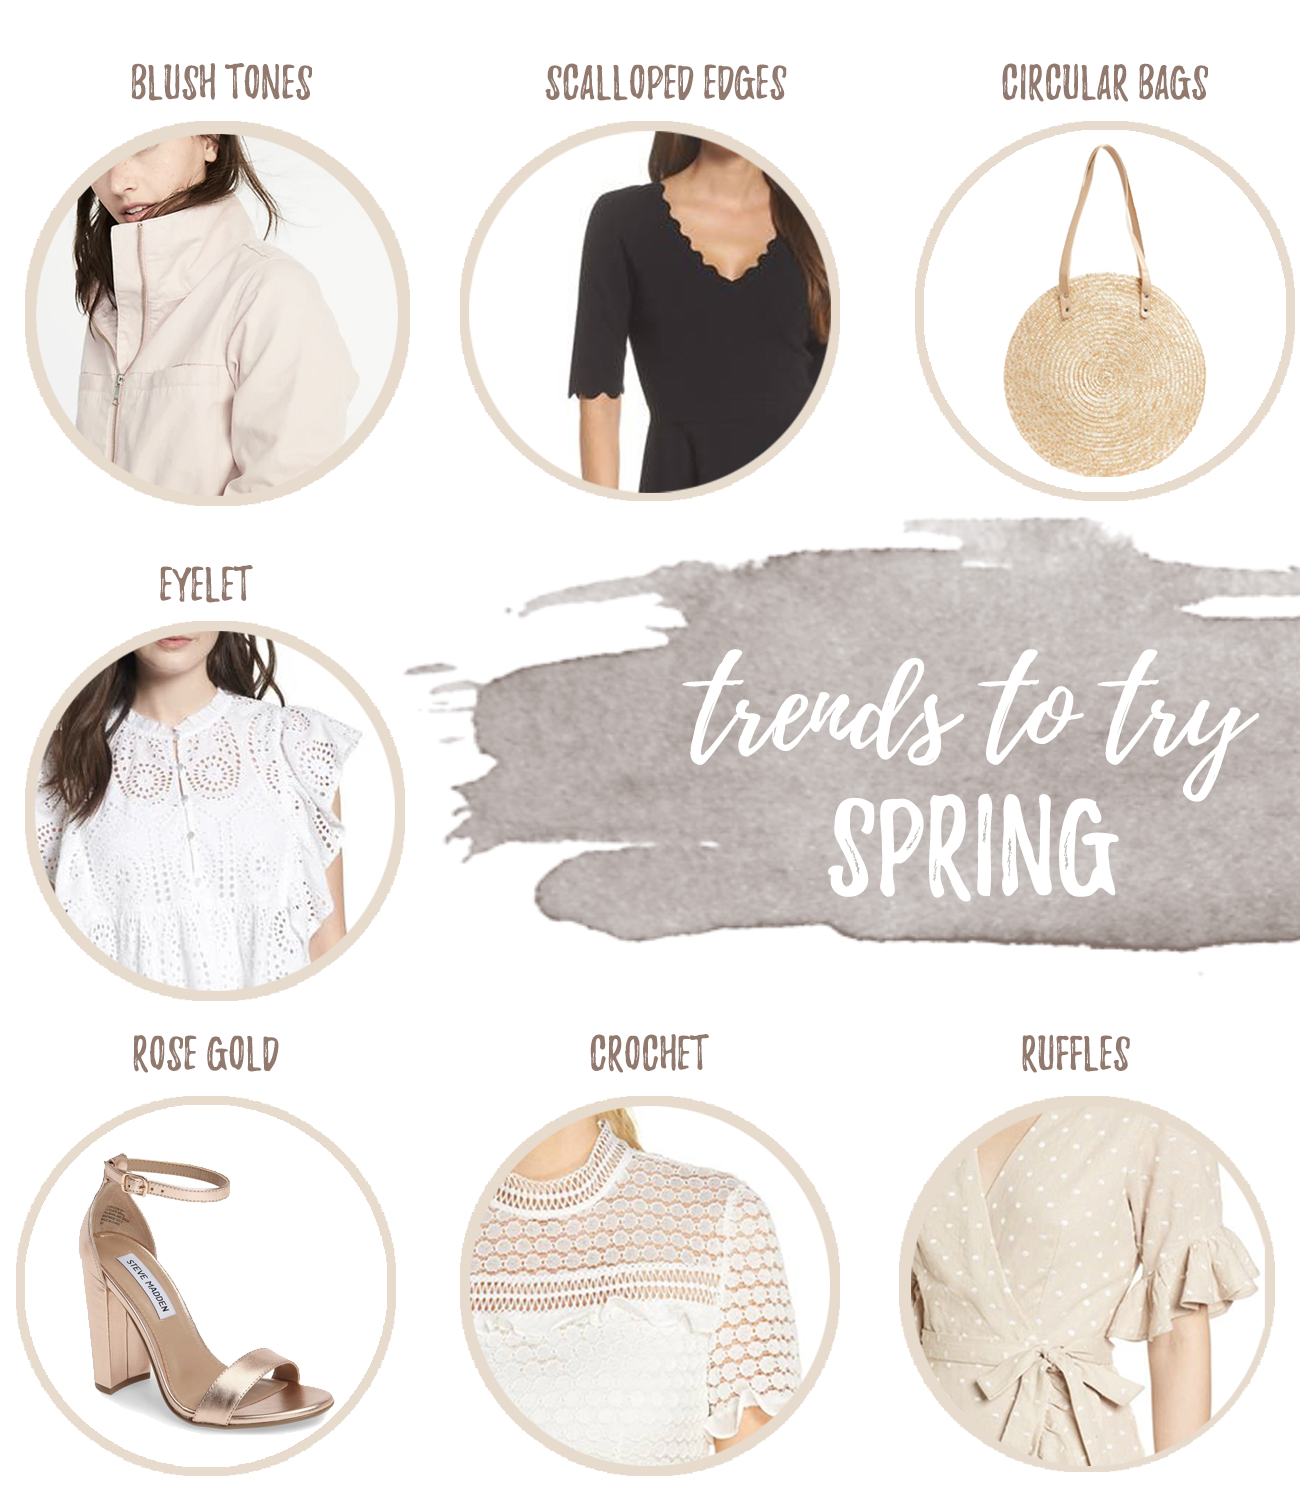 Not Too Trendy Spring Trends 2018 | Pinteresting Plans, a Connecticut Style Blog